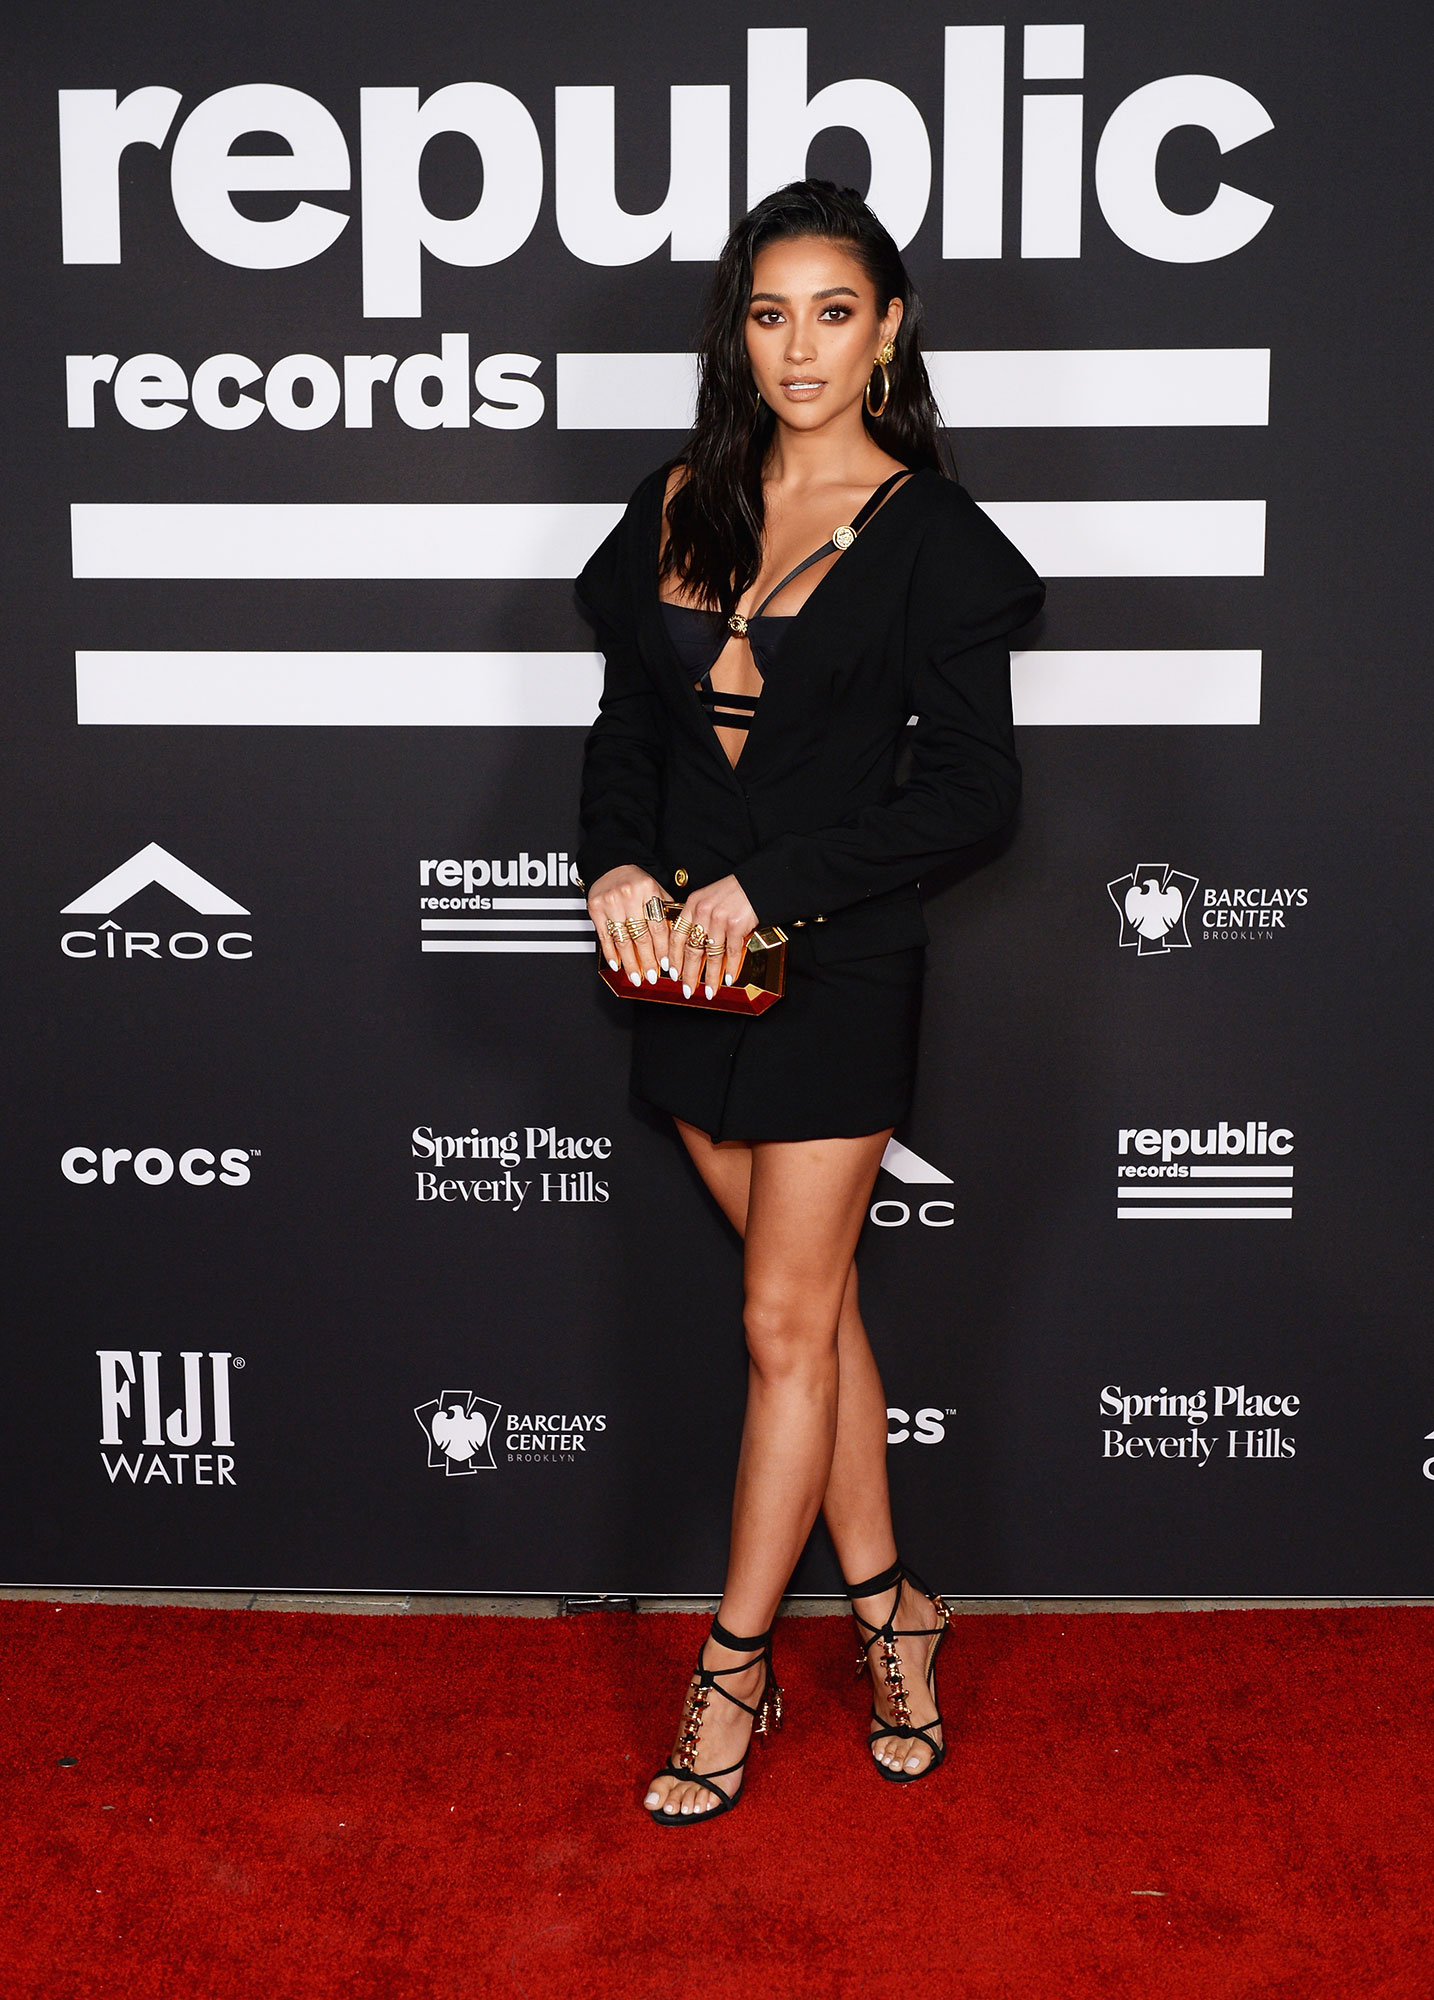 grammys 2019 Shay Mitchell - The Pretty Little Liars star went to the Republic Records Grammy After Party in a sexy black number with a plunging neckline.